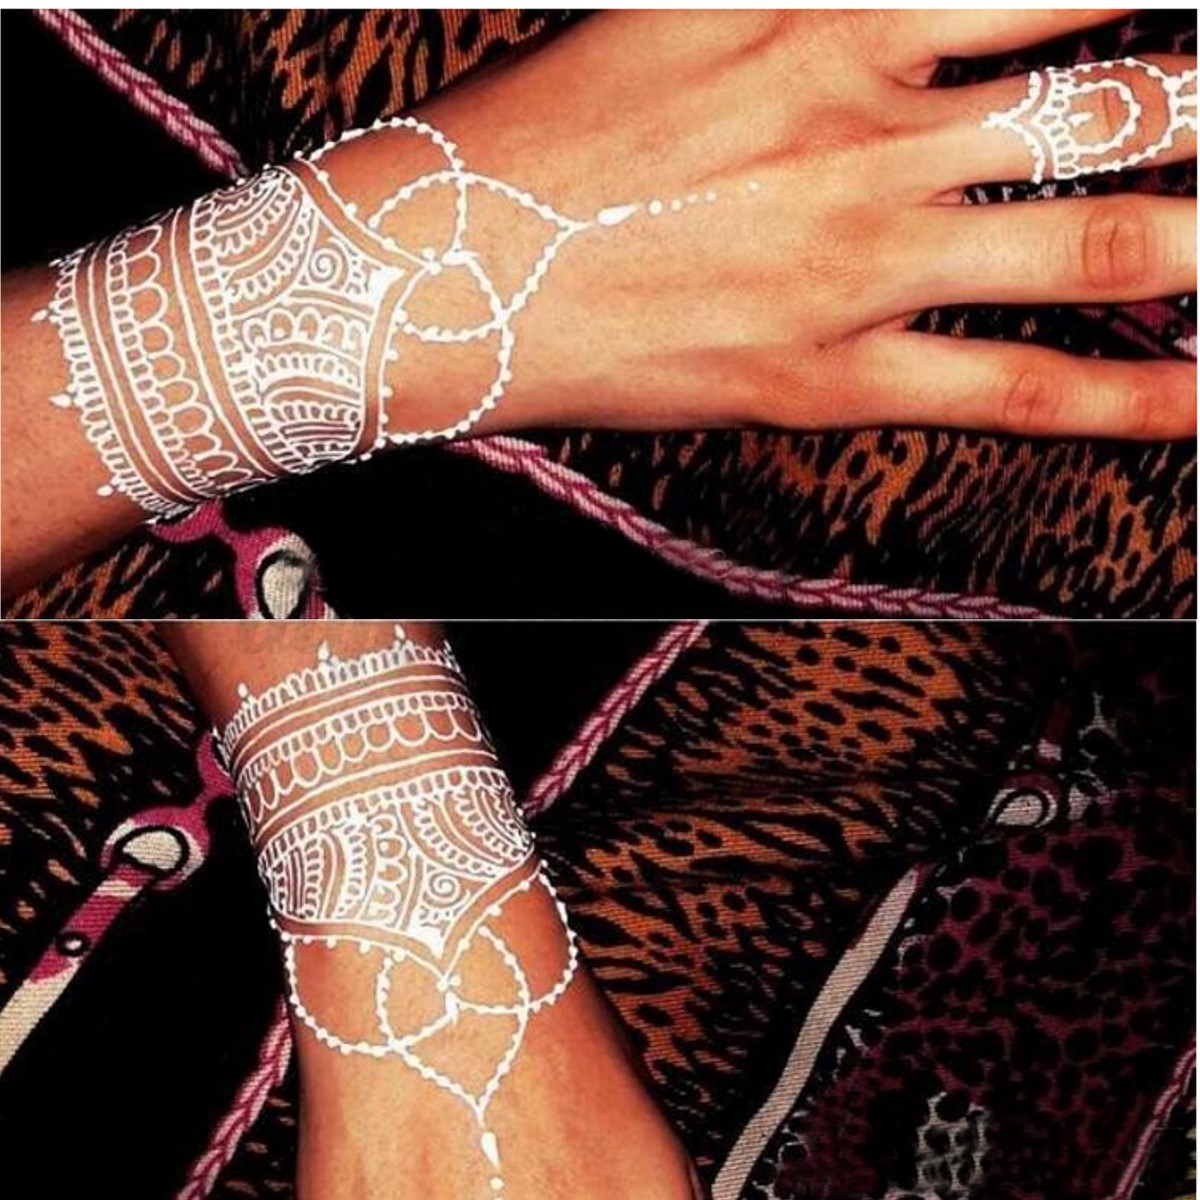 Inflicting Ink Tattoo Henna Themed Tattoos: White Natural Herbal Henna Cones Temporary Tattoo Kit Body